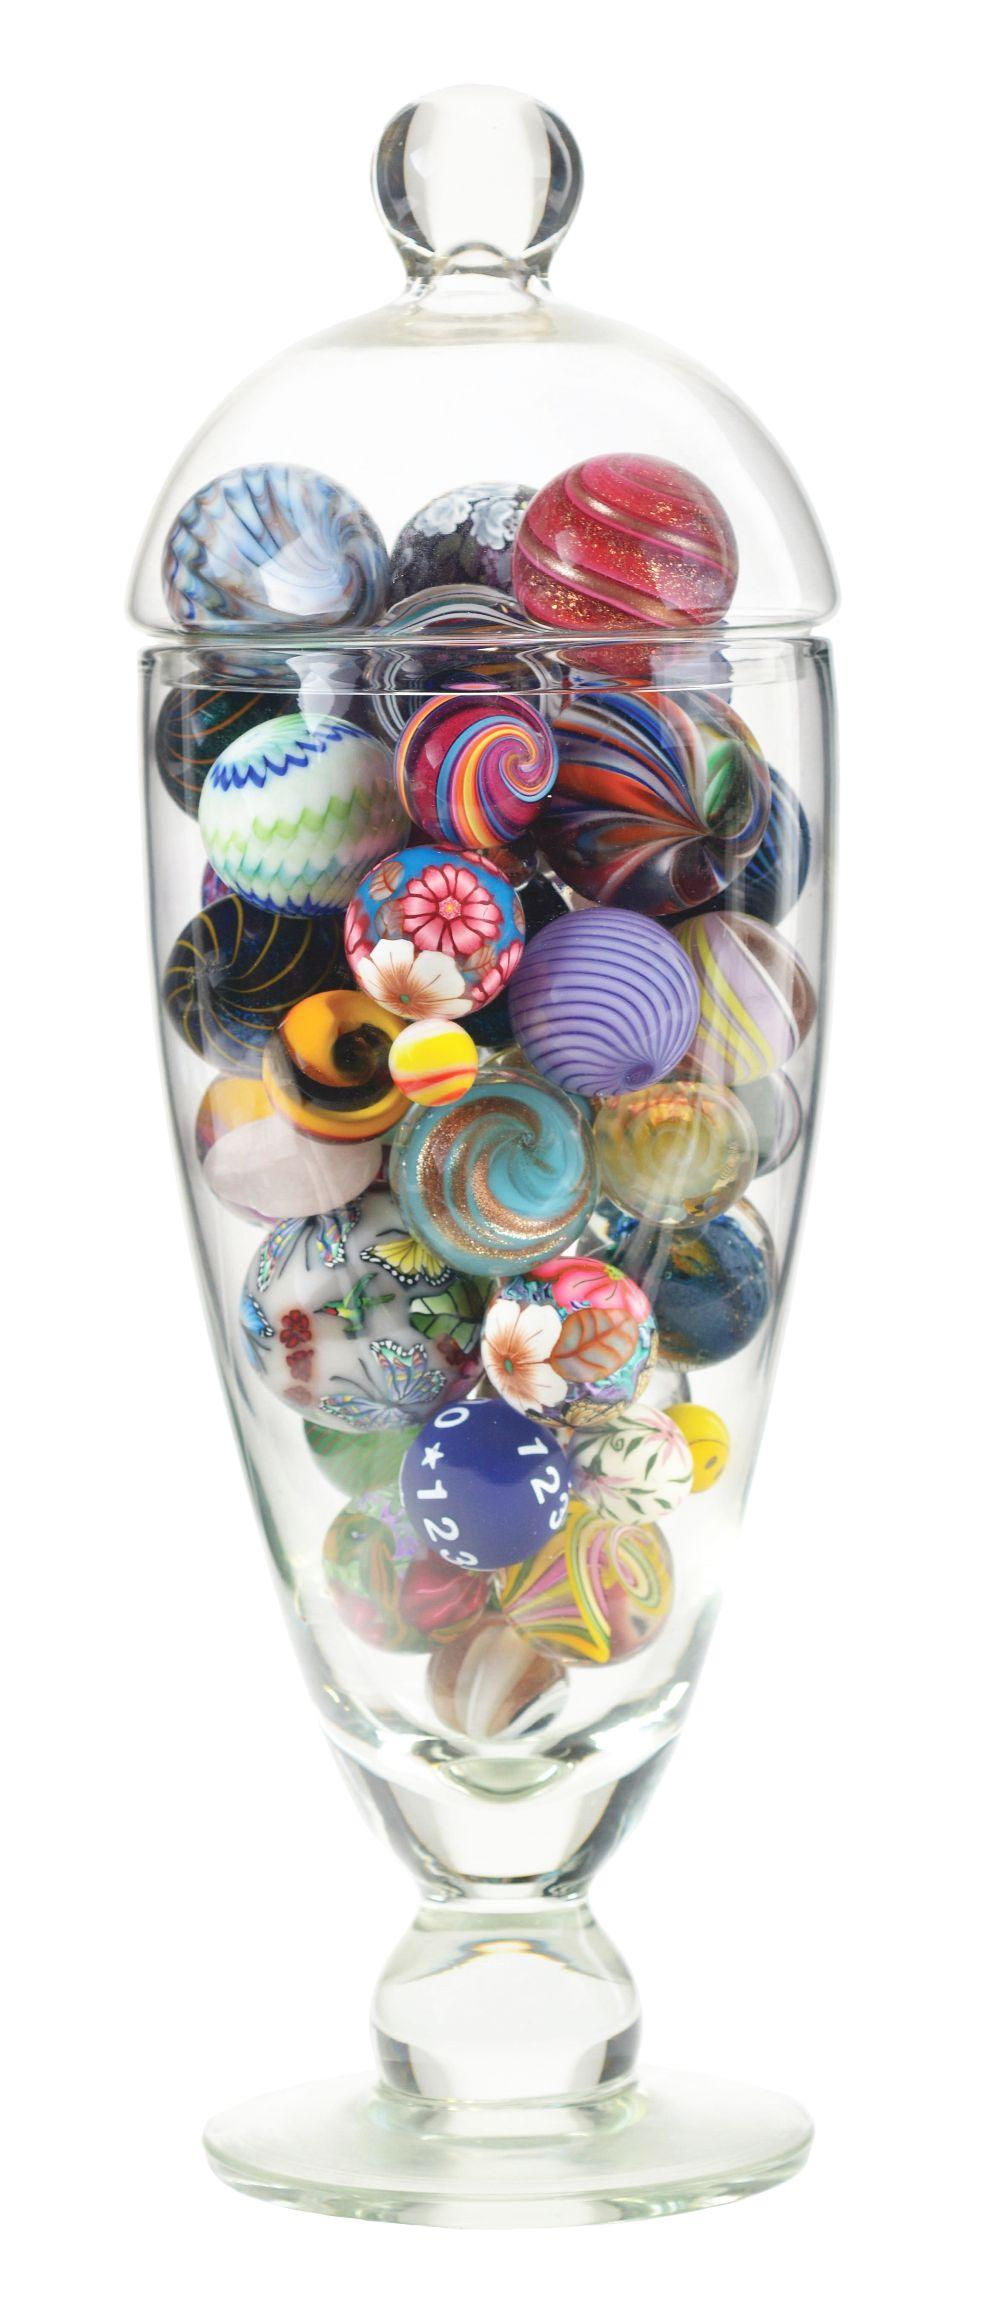 Vase of Assorted Marbles.